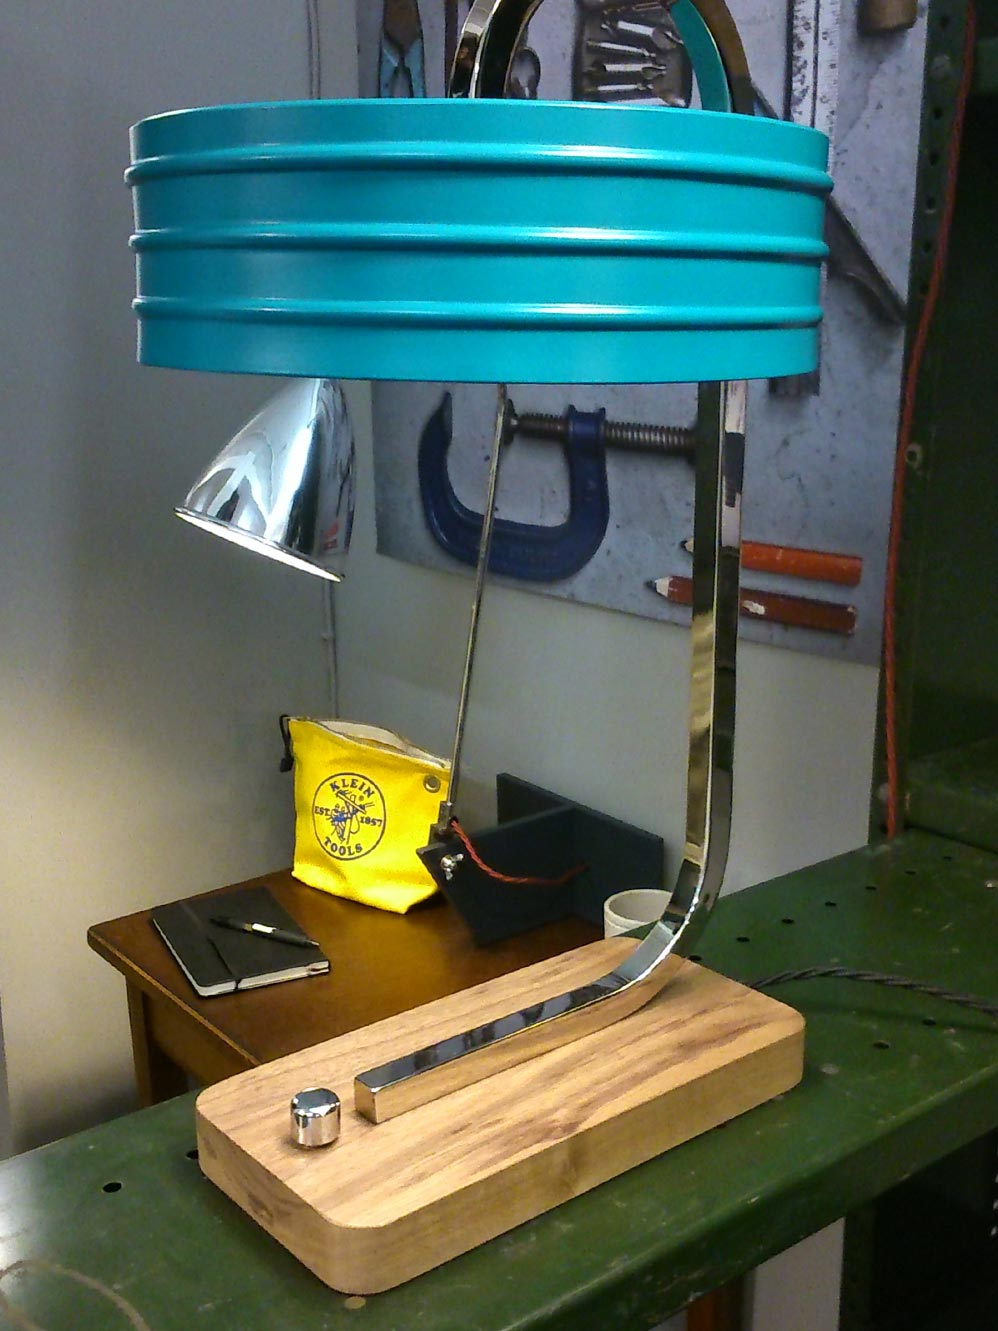 Here's The Otis Lamp by  Nocturne  who produced some fantastic vintage style products.